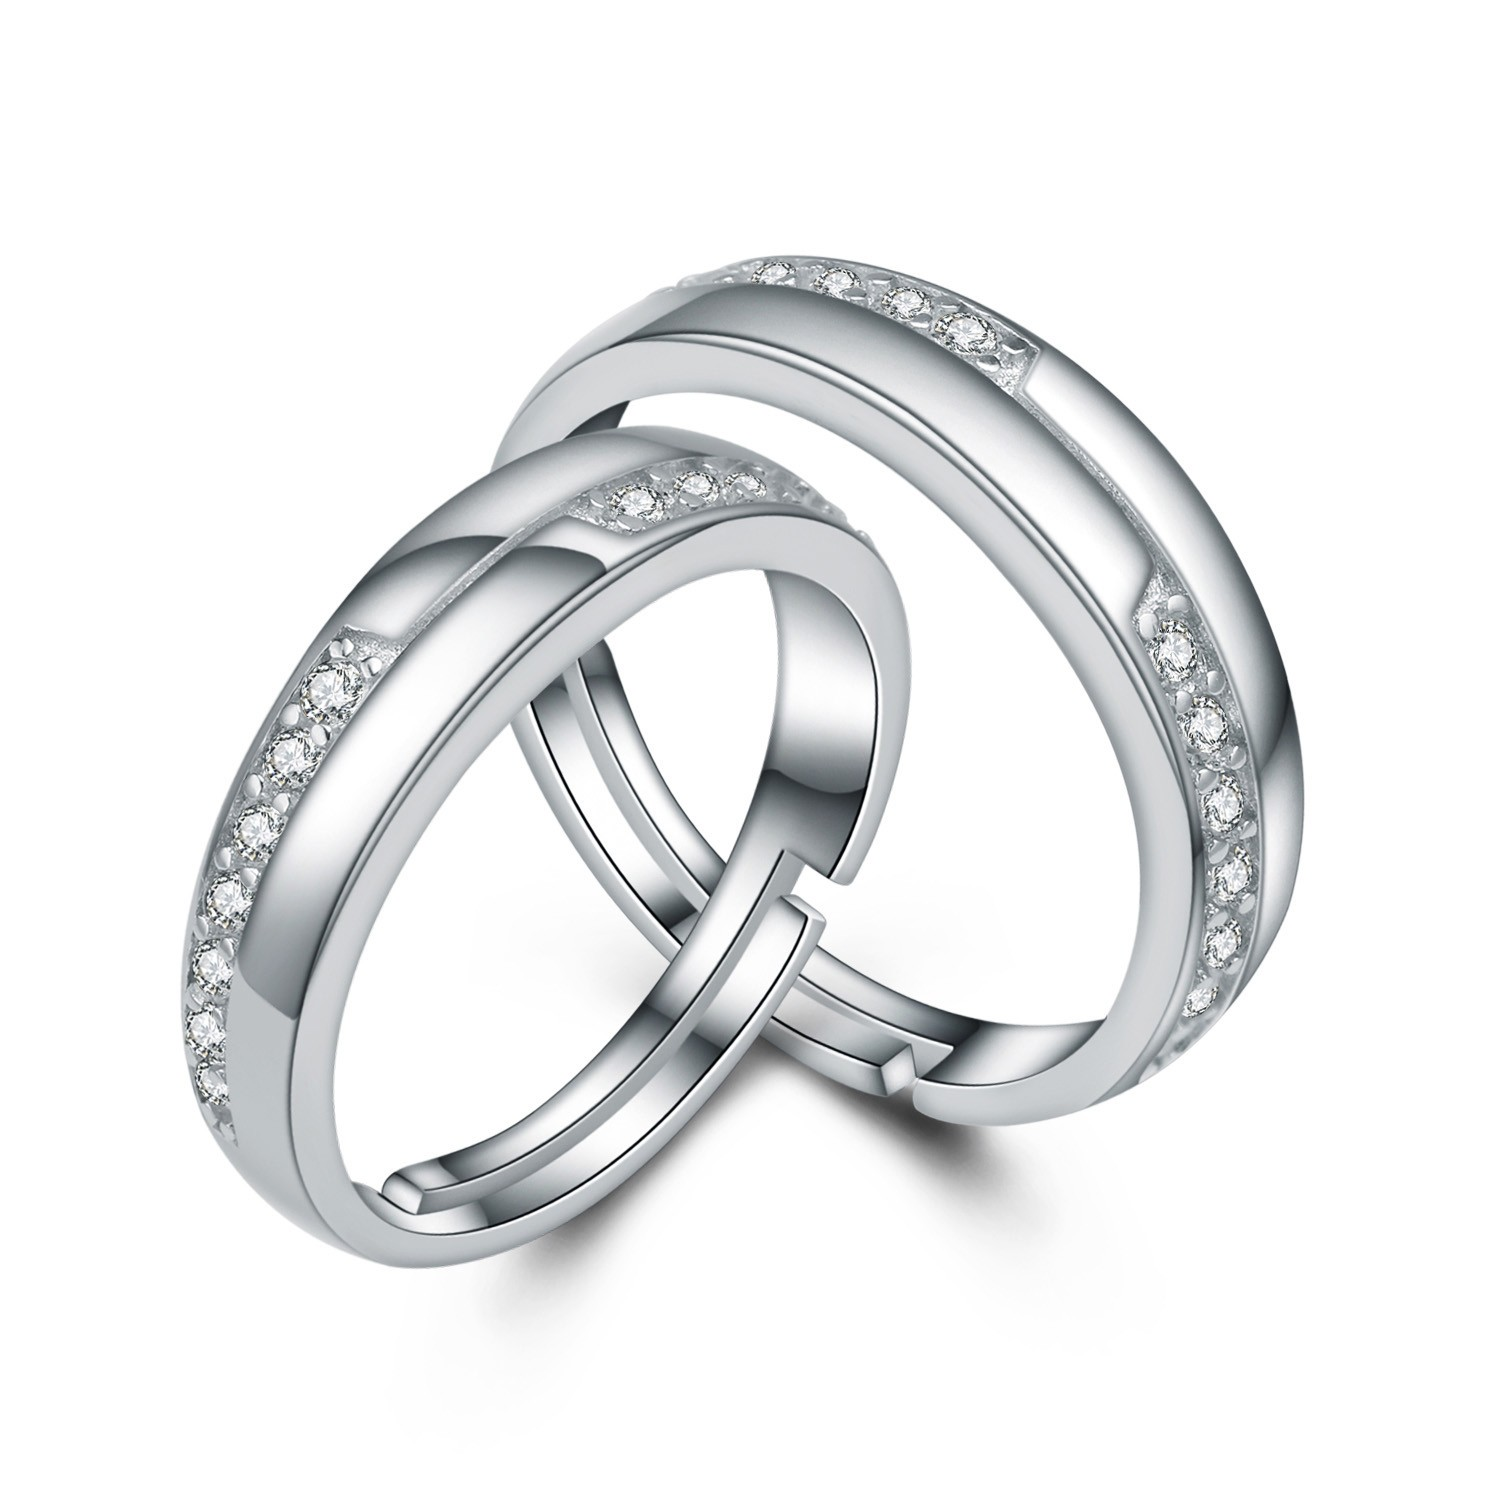 1e41f2134d High-End 925 Sterling Silver Inlaid Cubic Zirconia Couple Rings - Couple  Rings